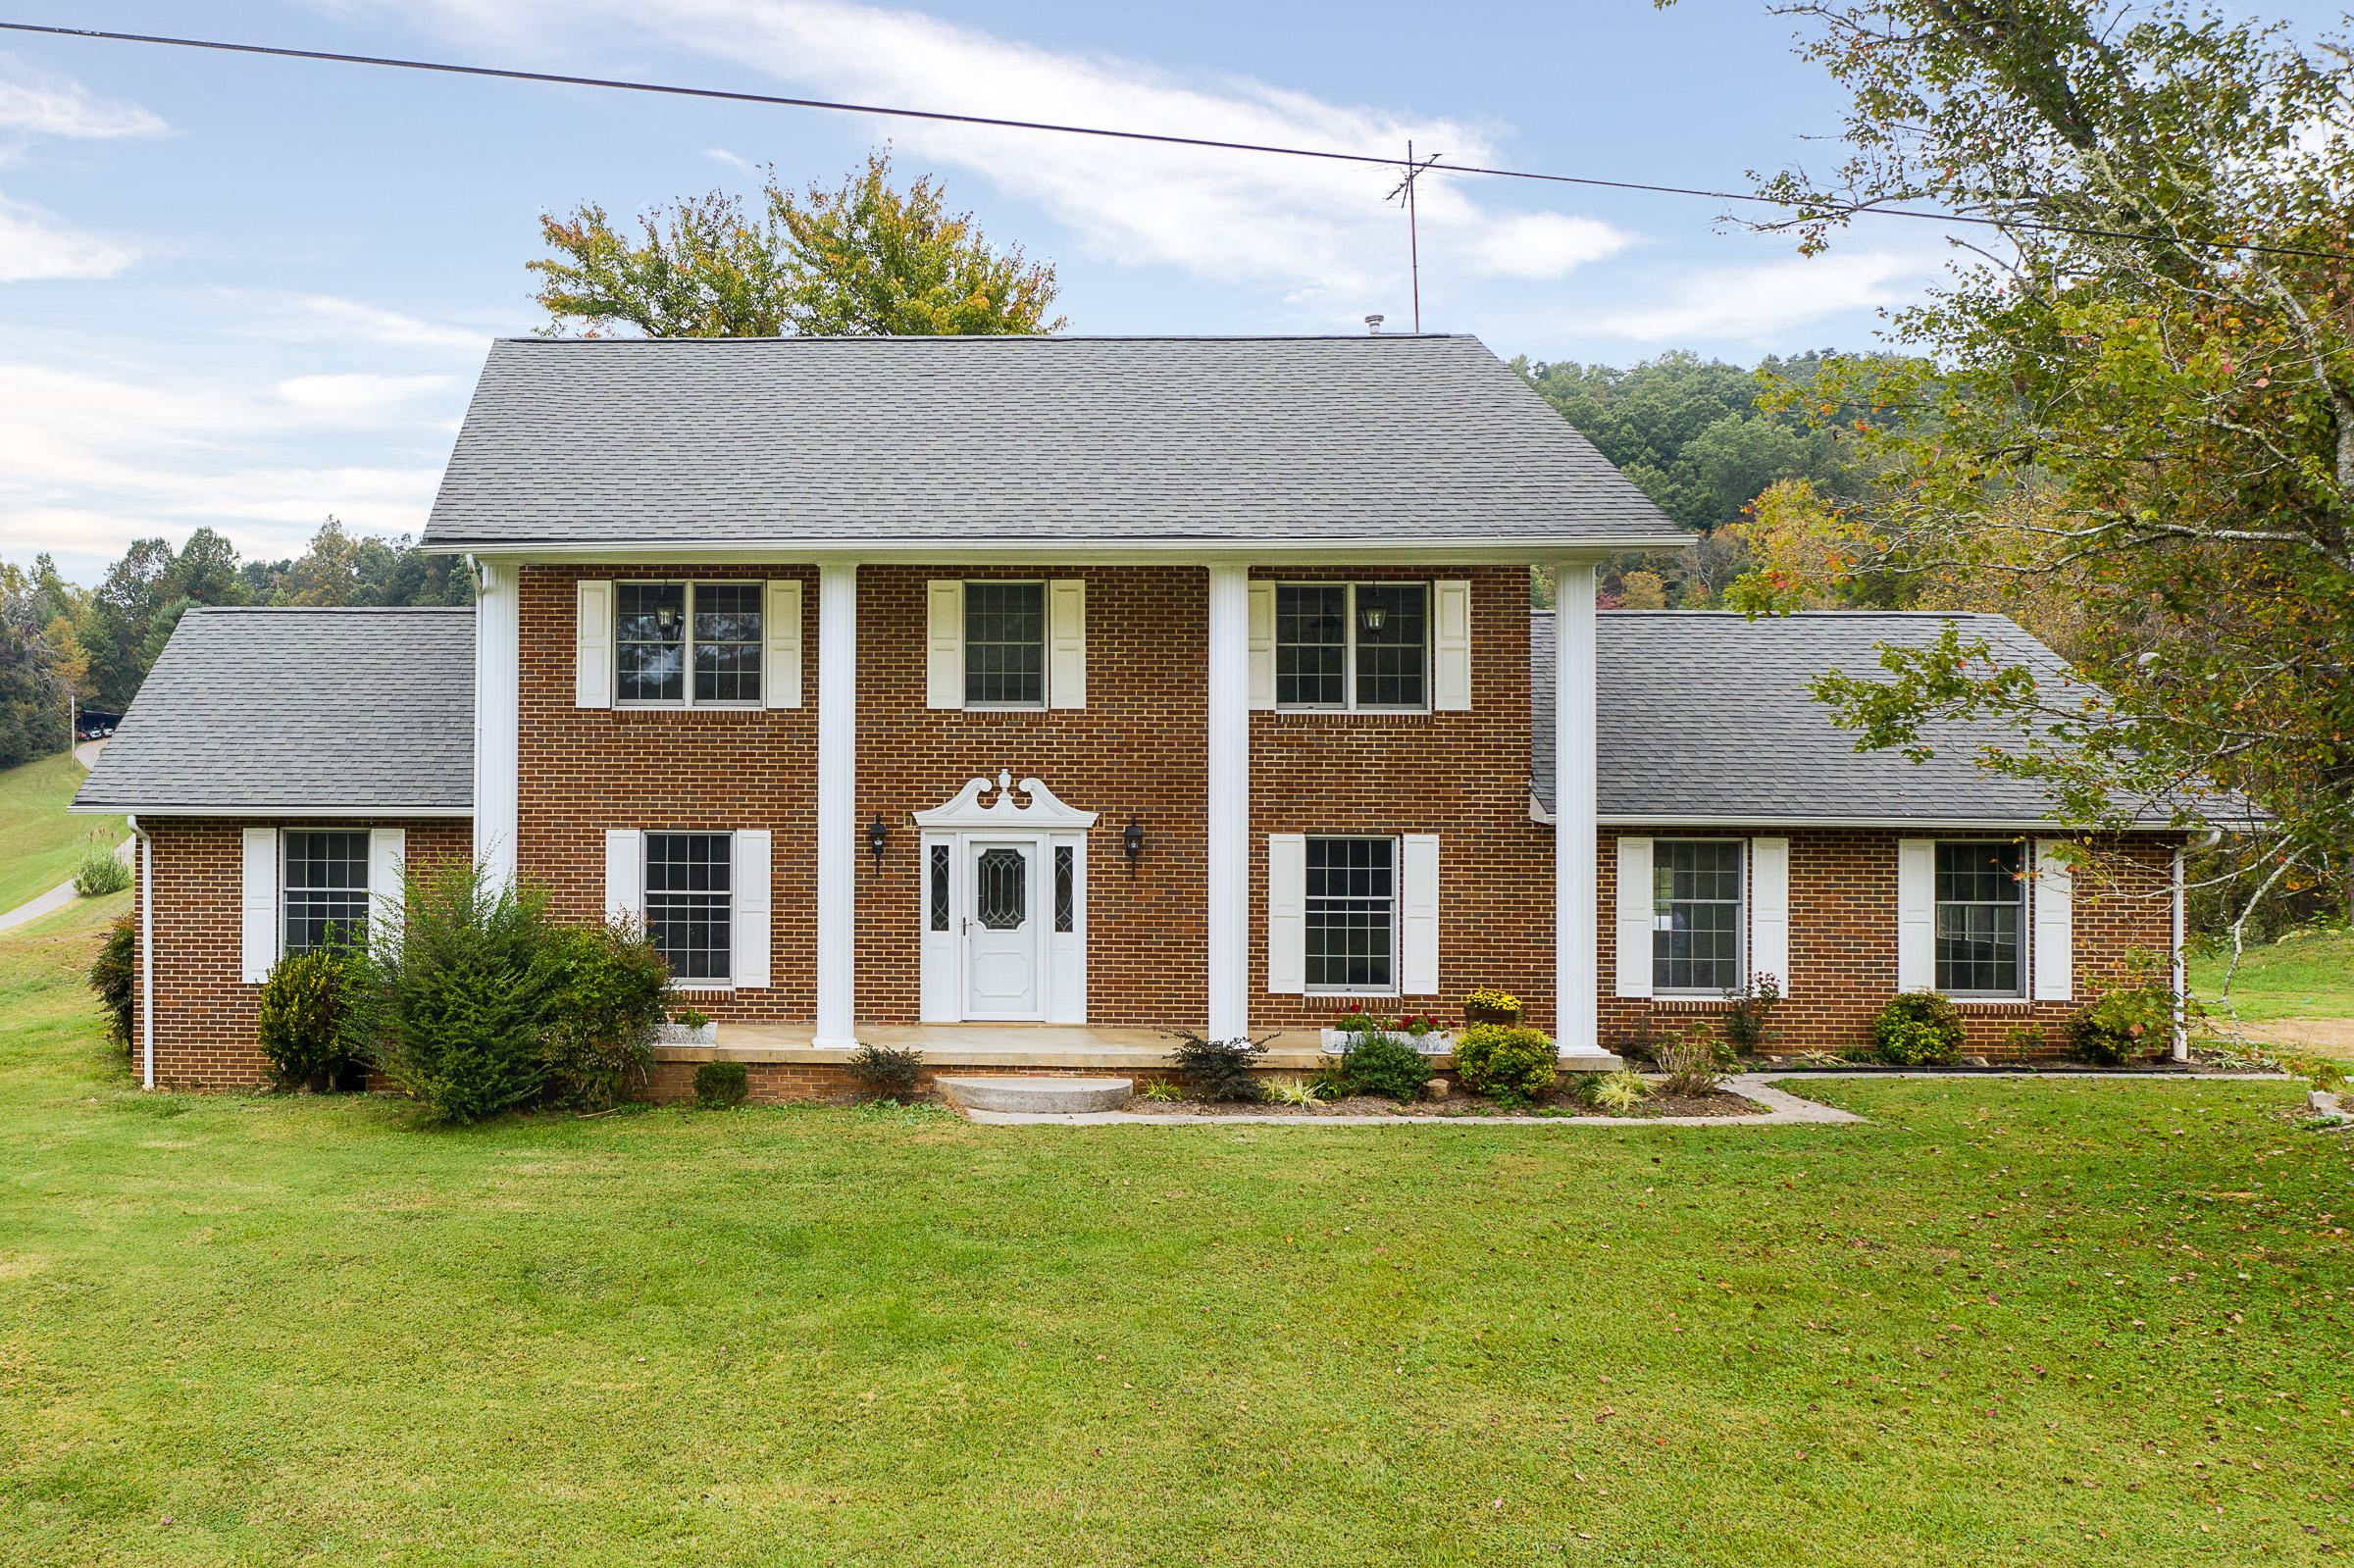 1521 McCammon Rd, Knoxville, Tennessee 37920, 3 Bedrooms Bedrooms, ,3 BathroomsBathrooms,Single Family,For Sale,McCammon,1133591